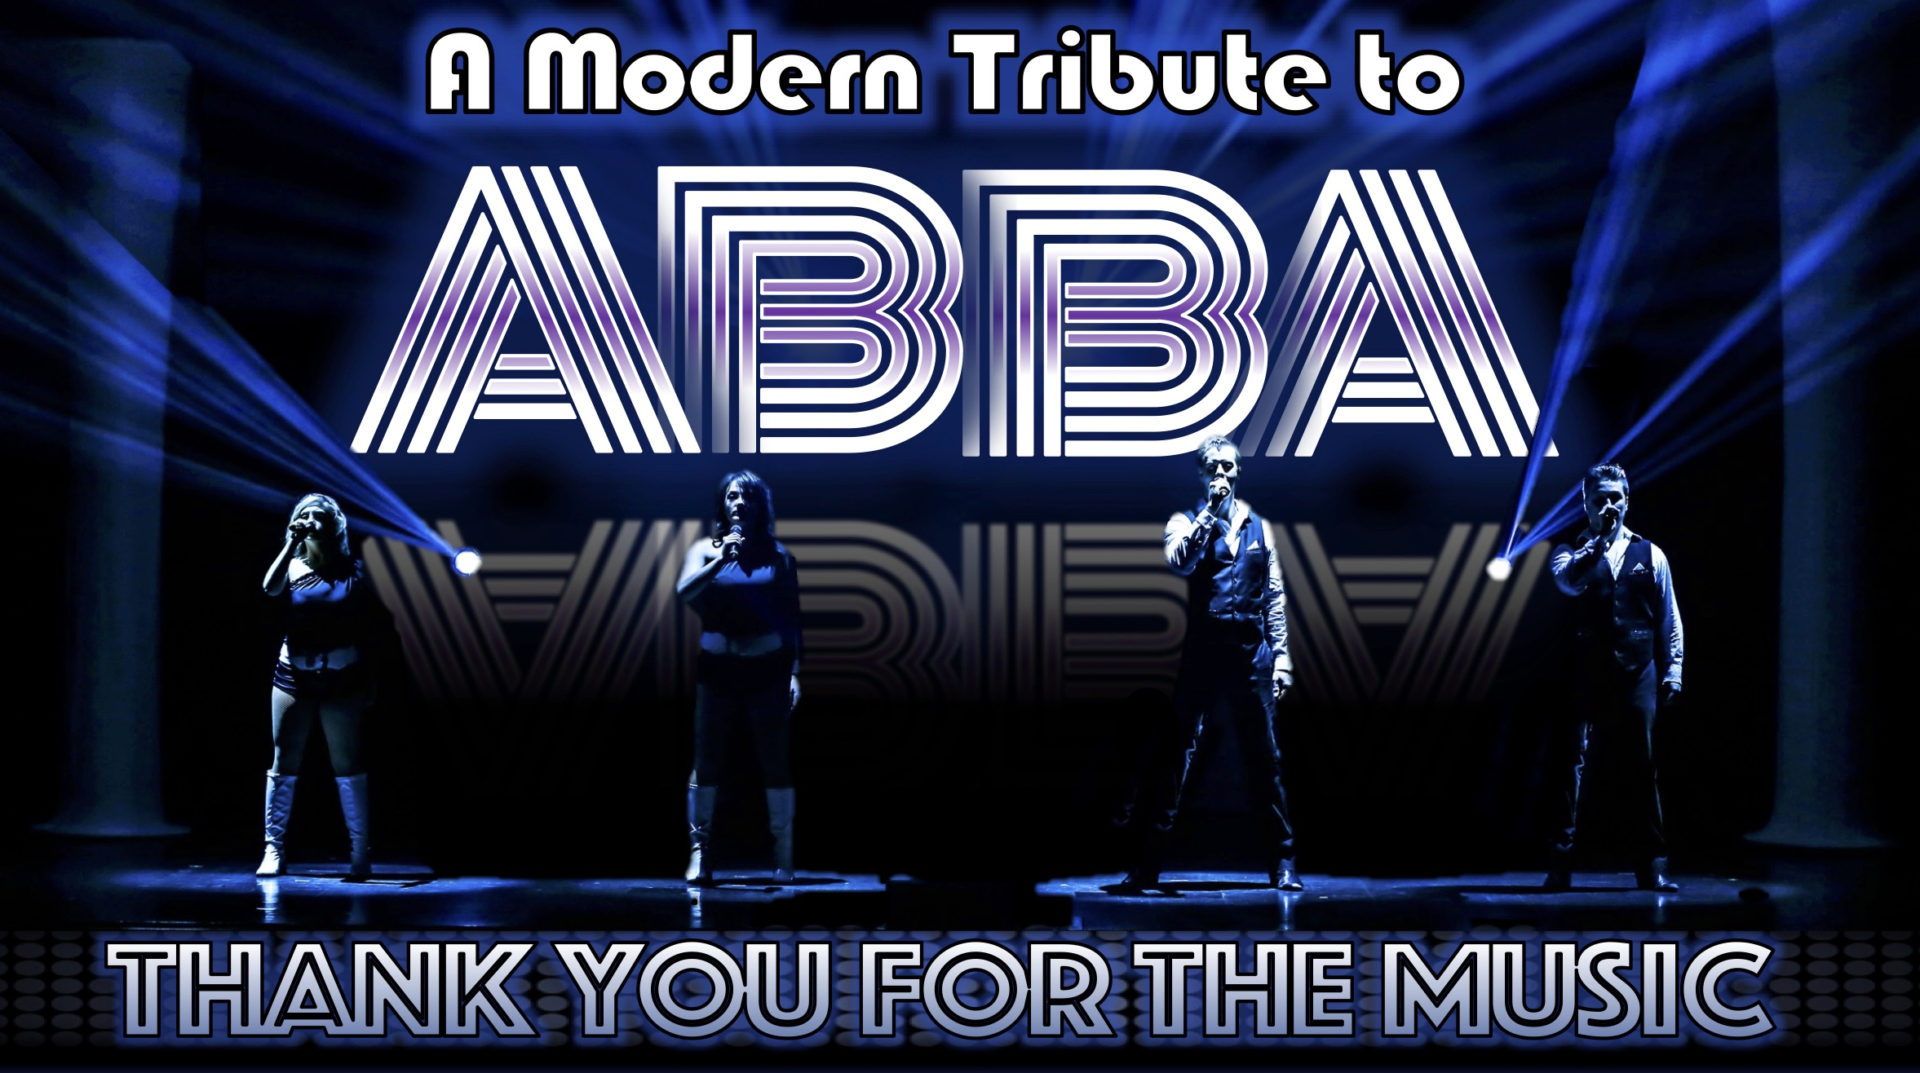 Thank You for the Music – A Modern Tribute to ABBA